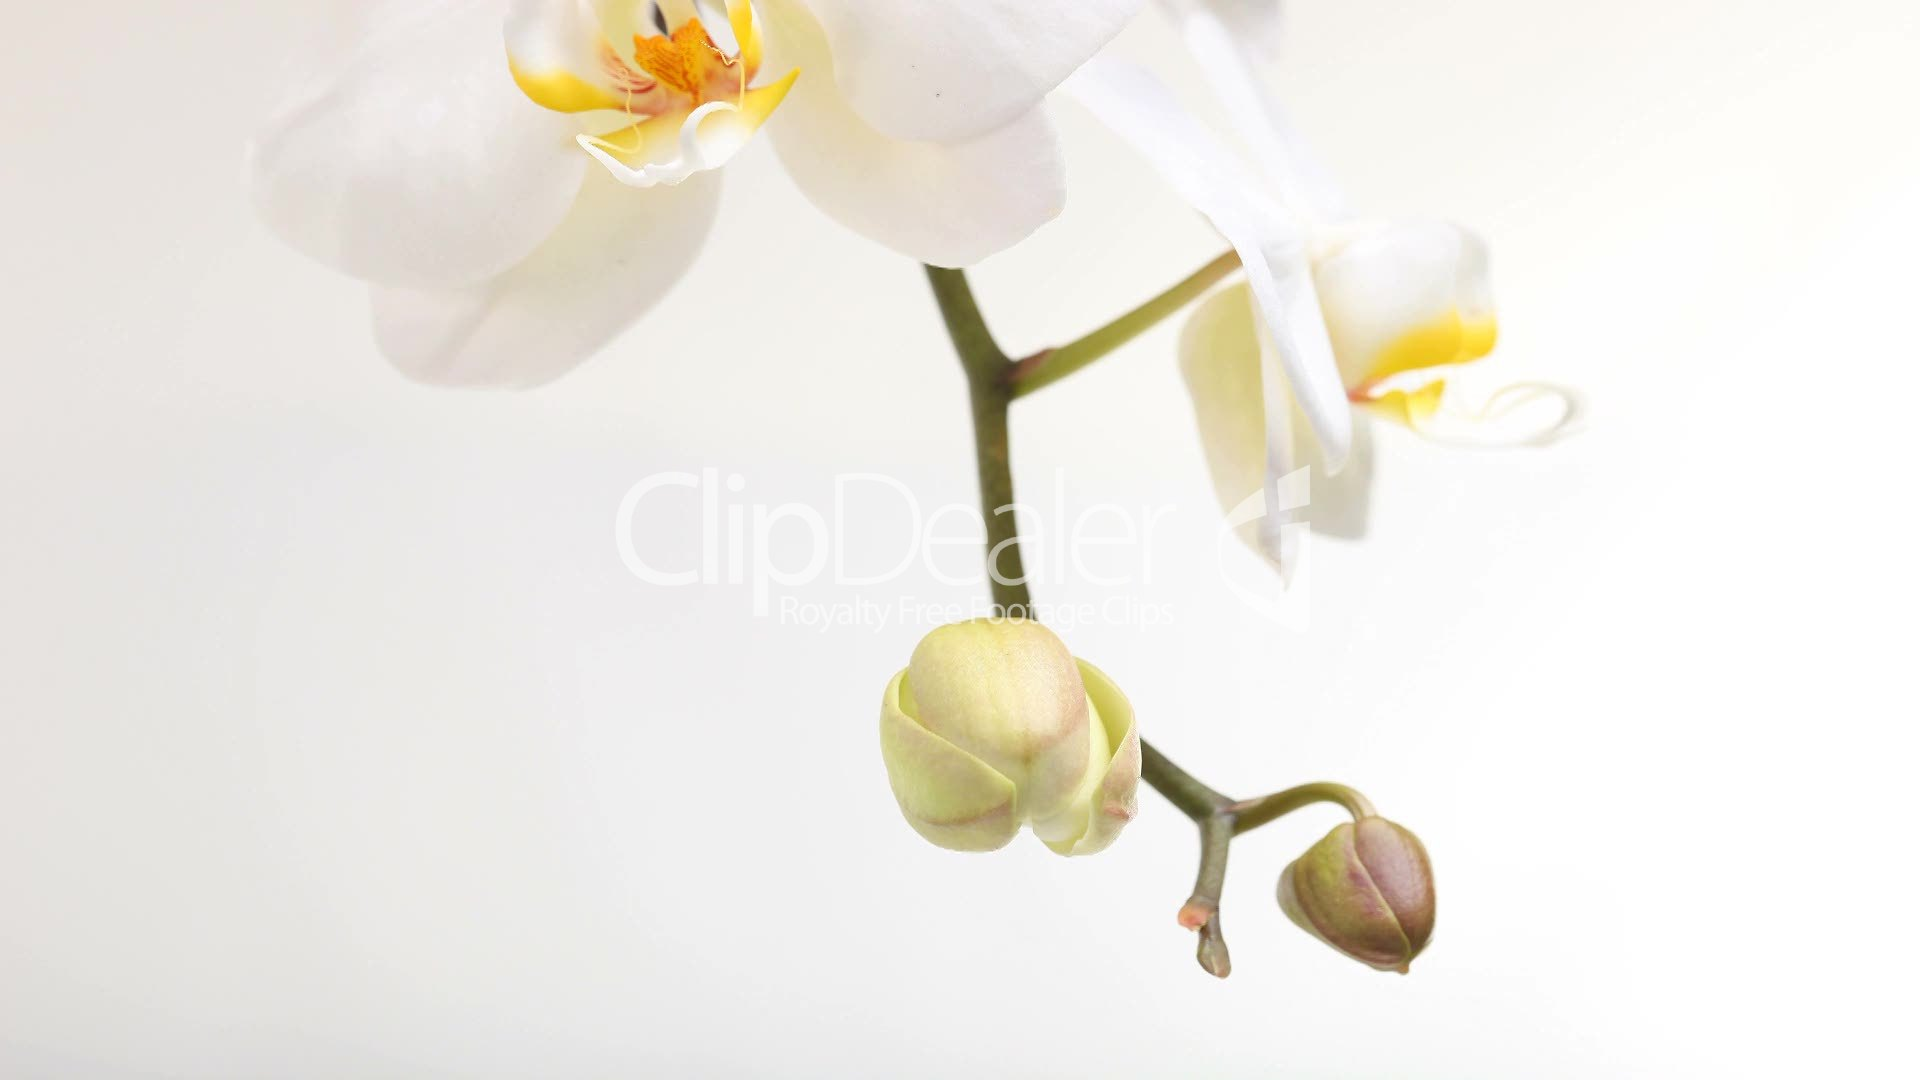 Wallpaper orchidee weiß  Weiße Orchidee: Royalty-free video and stock footage